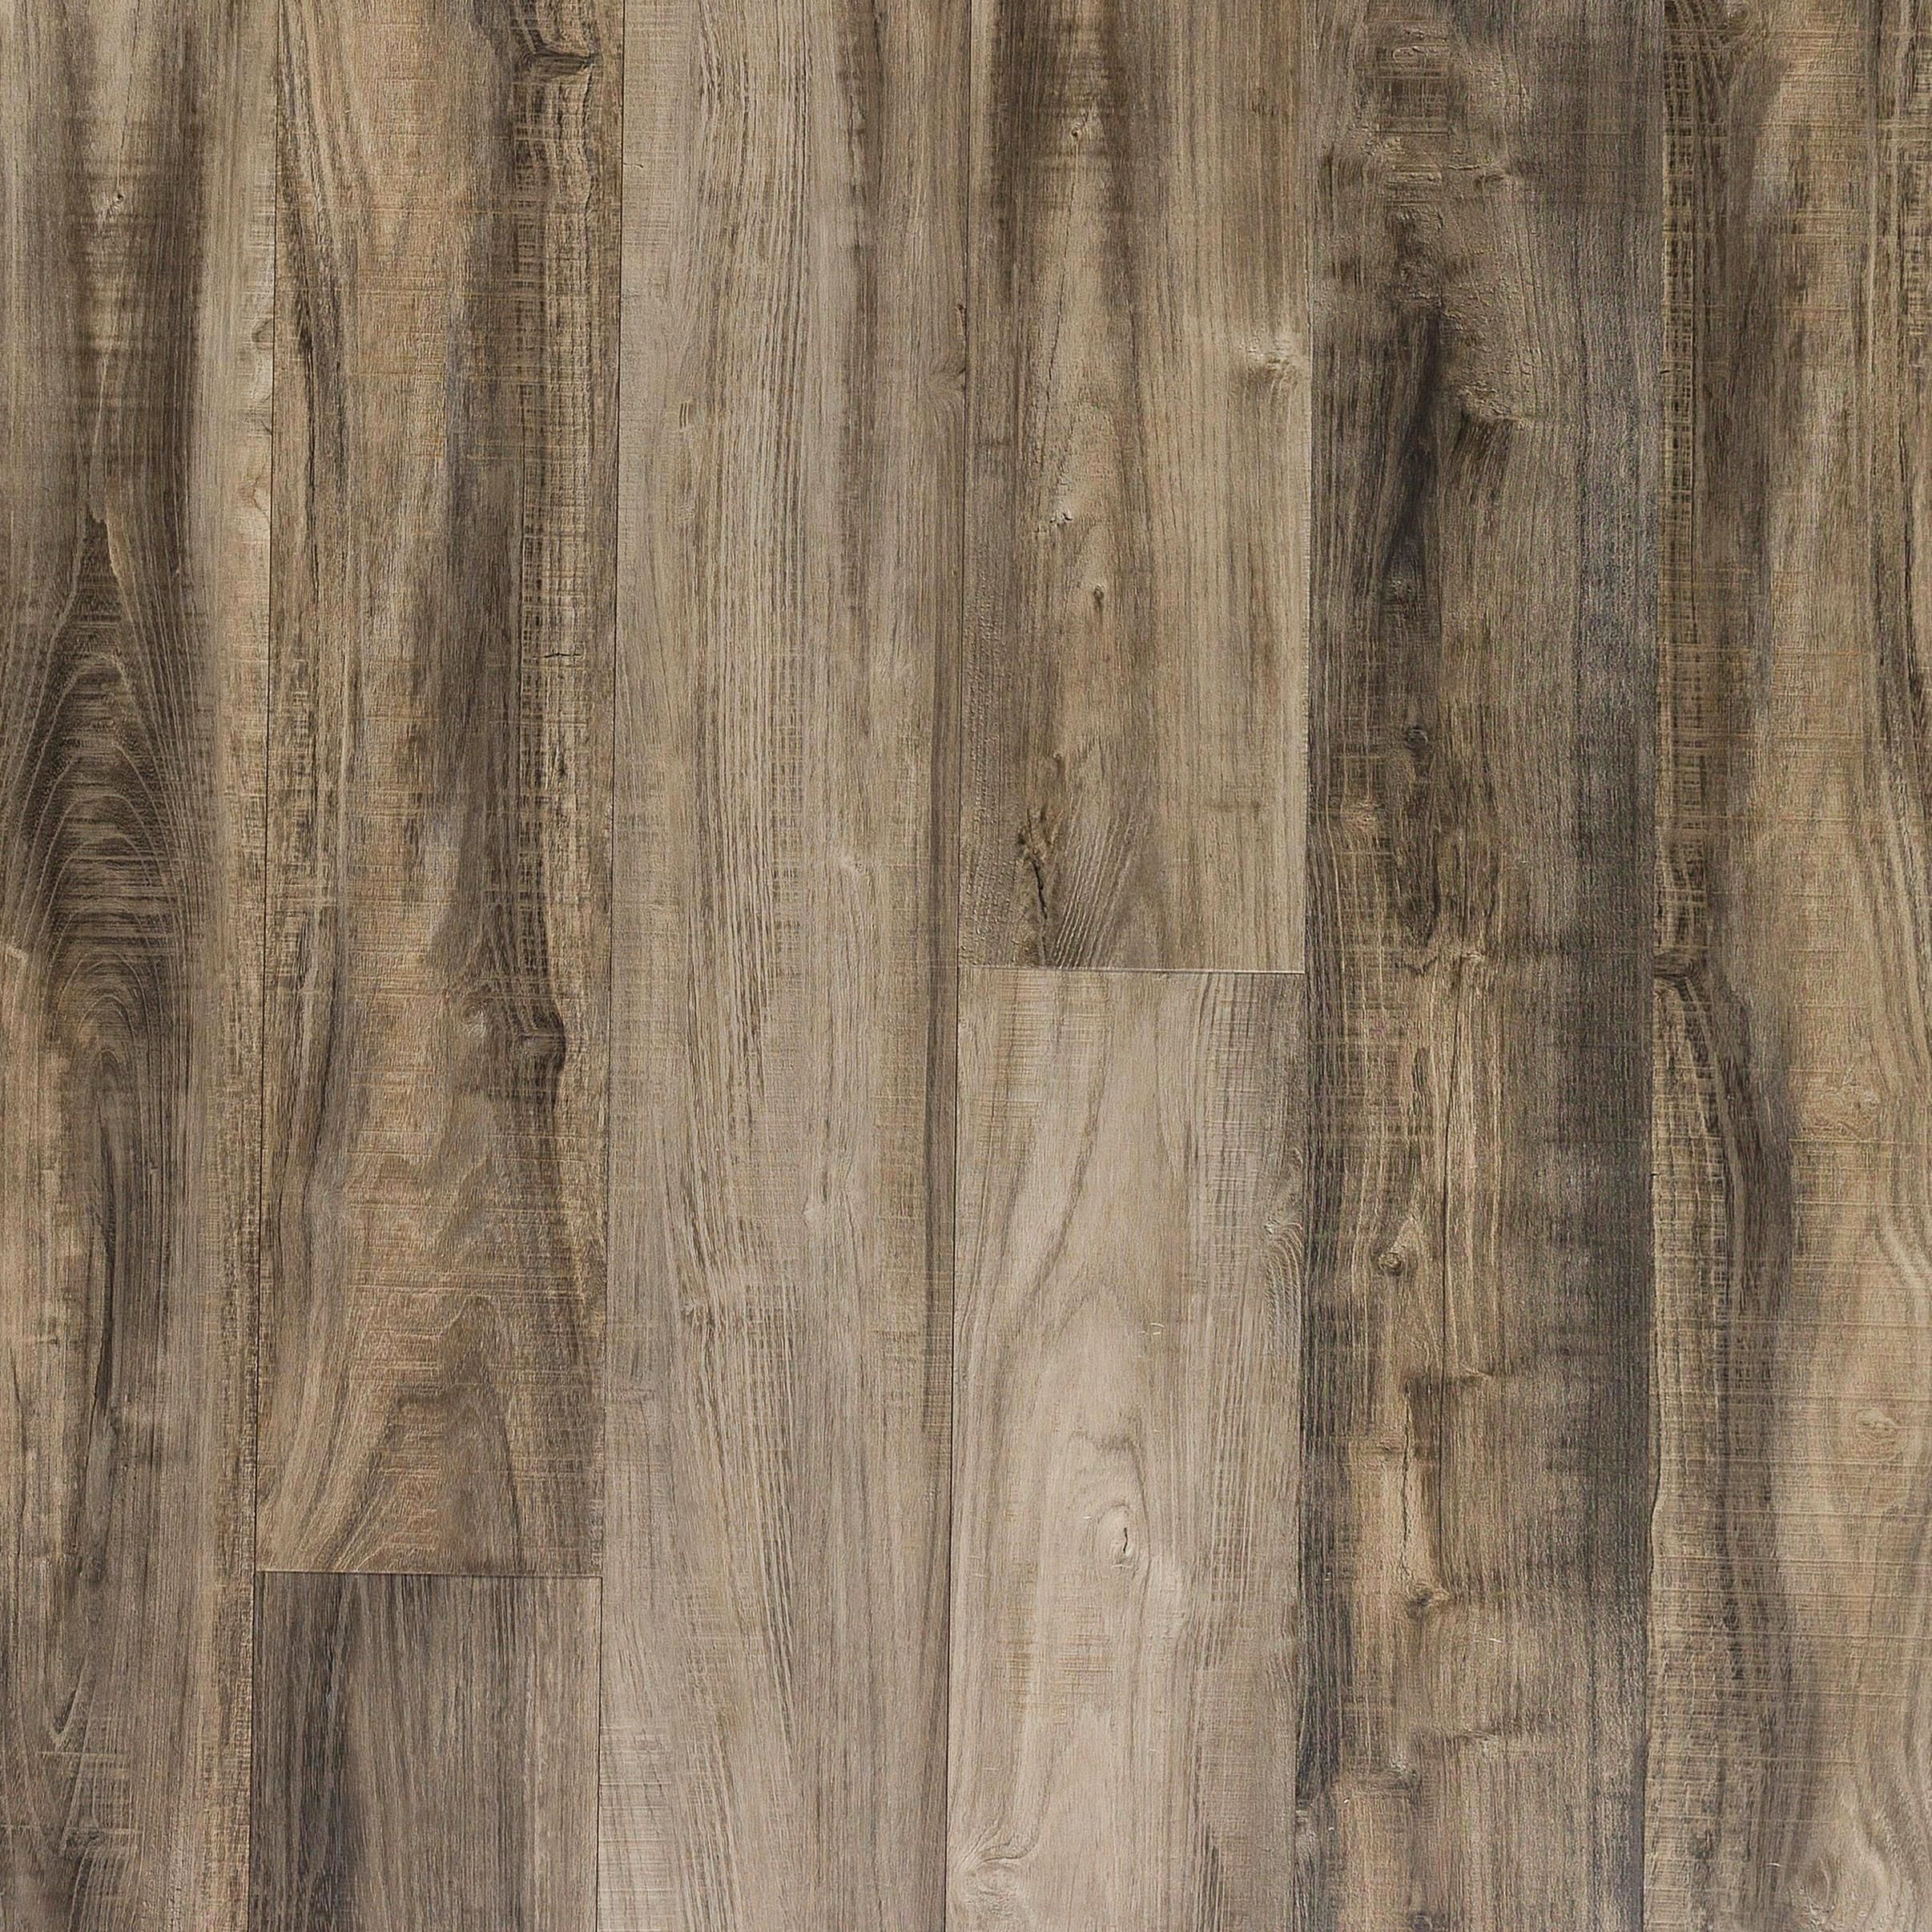 6 5mm Nucore Ombre Gray Rigid Core Luxury Vinyl Plank Cork Back Looks And Feels Like Wood And Tile But Can In 2020 Luxury Vinyl Plank Vinyl Plank Waterproof Flooring